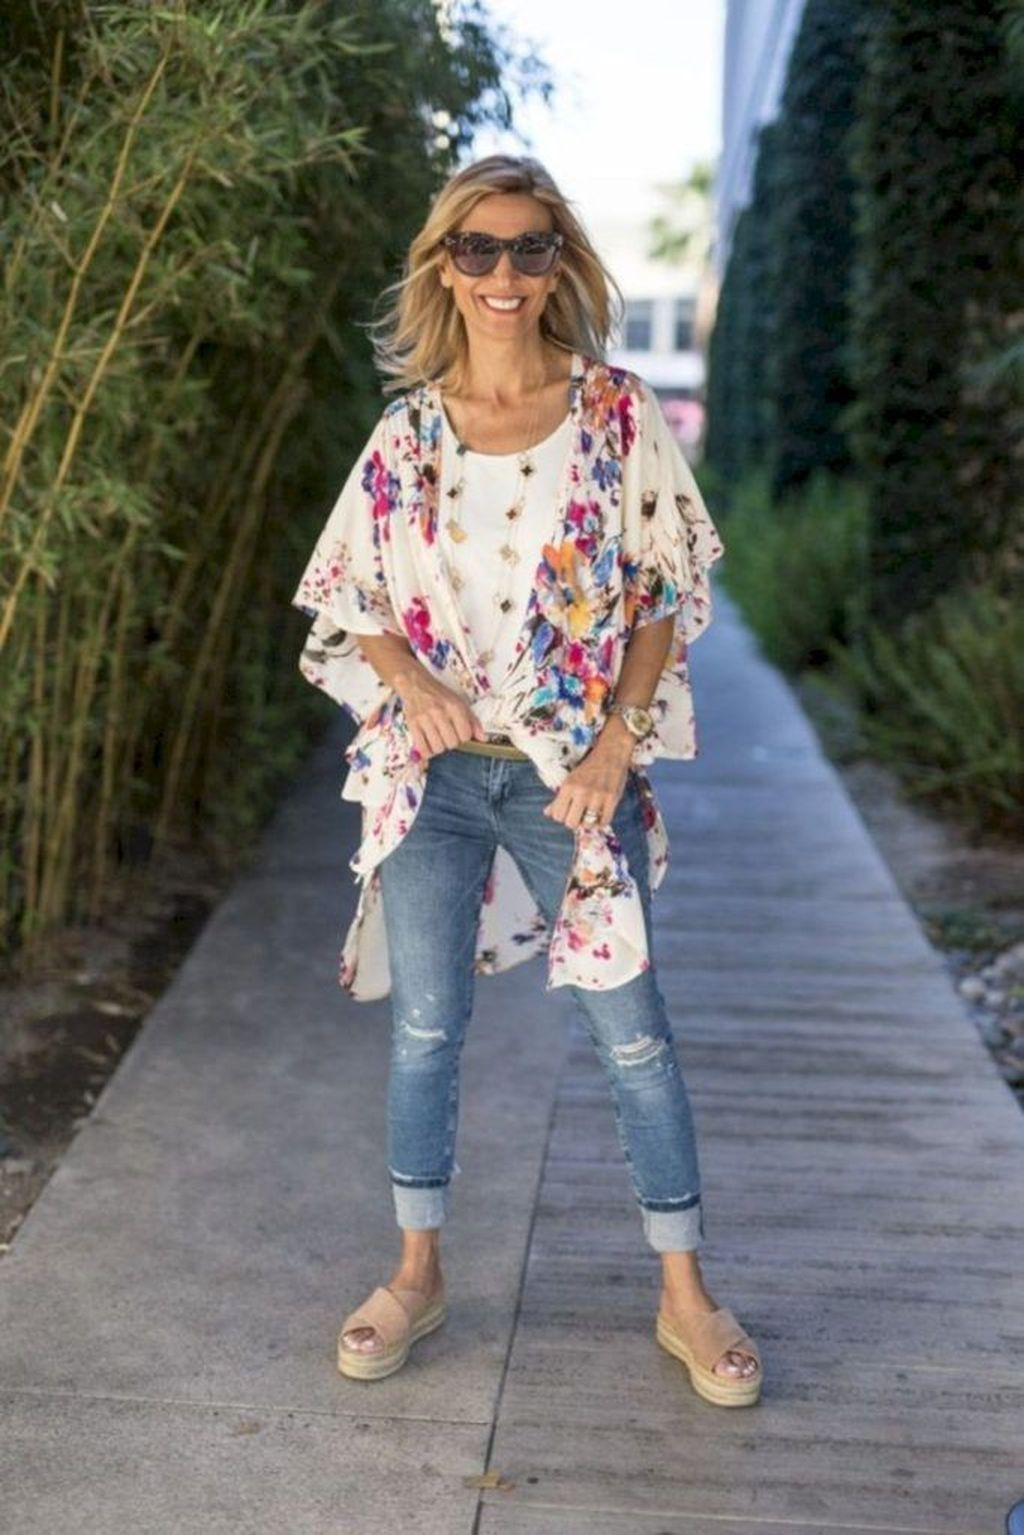 Trends For Spring Summer Clothes For Real Women Over 40: 44 Inspiring Spring And Summer Outfits Ideas For Women